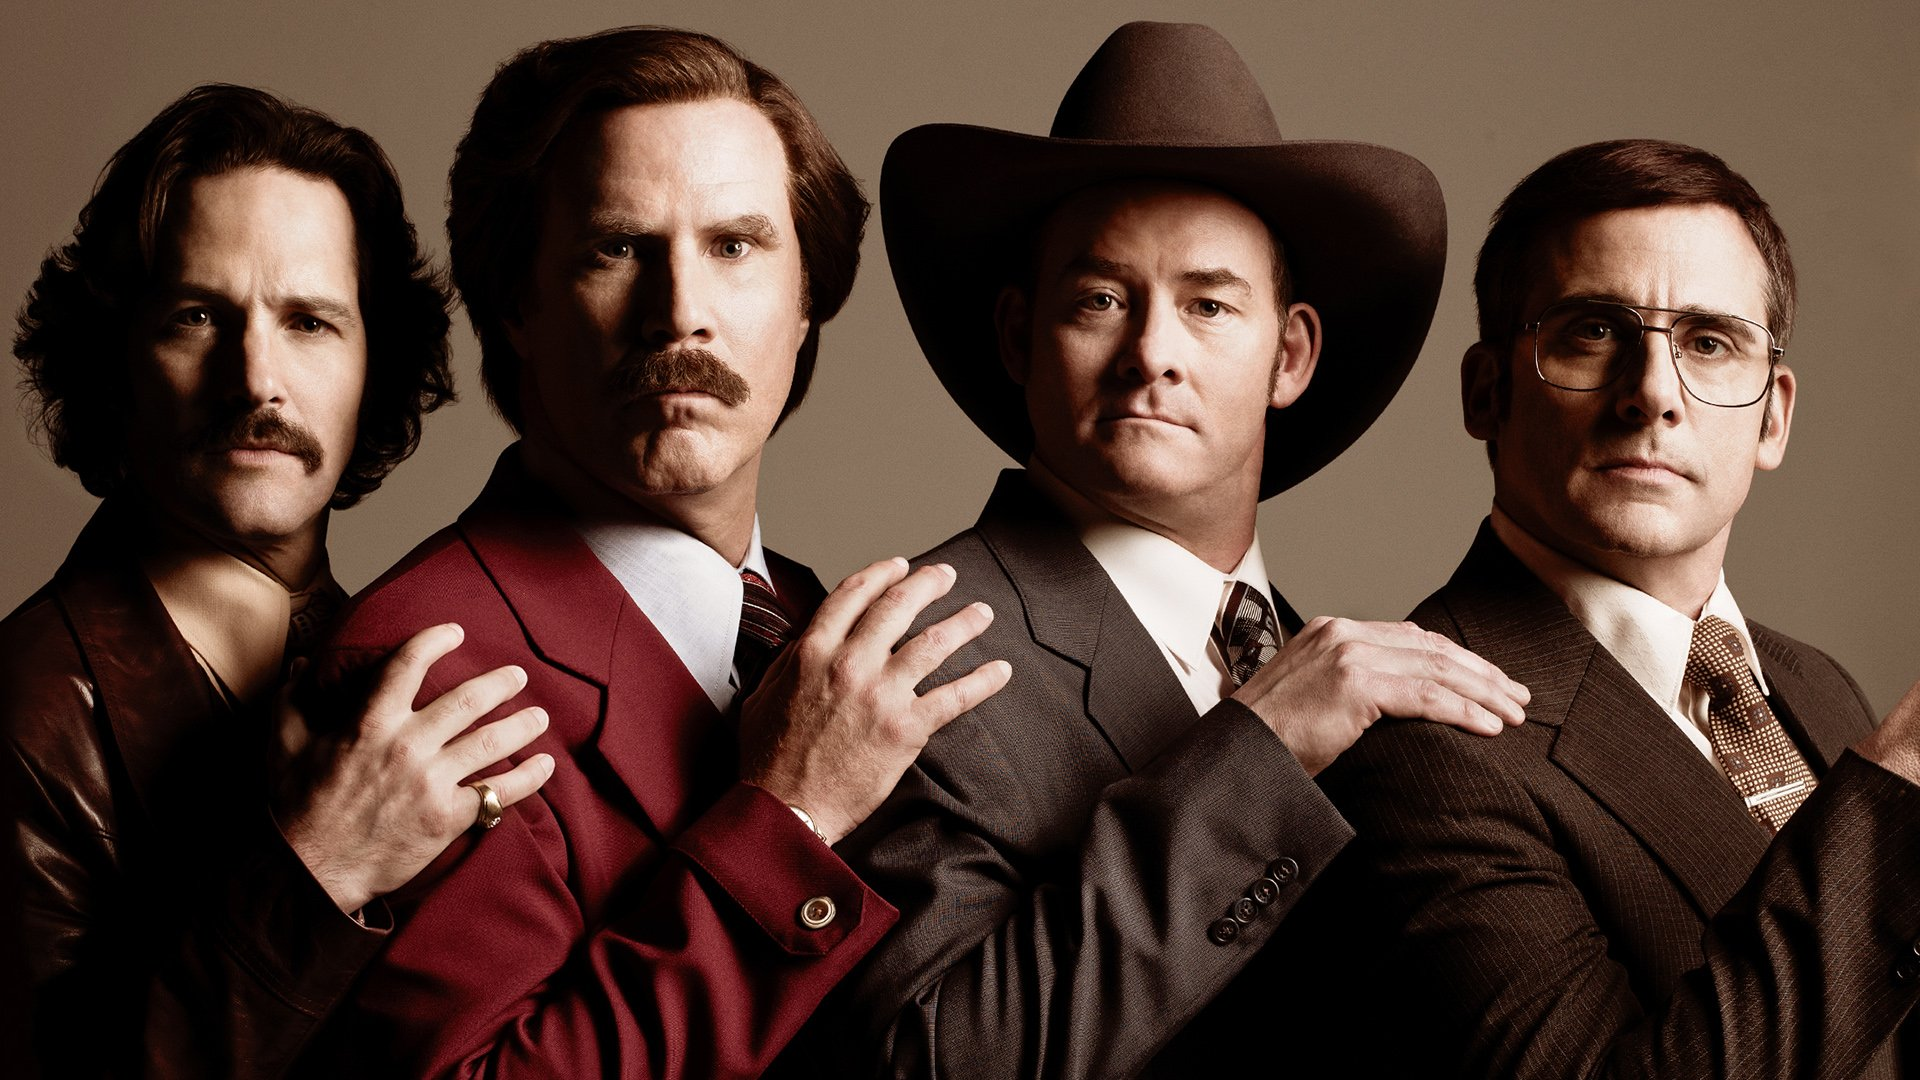 Promotional image for Anchorman: The Legend of Ron Burgundy (2004)